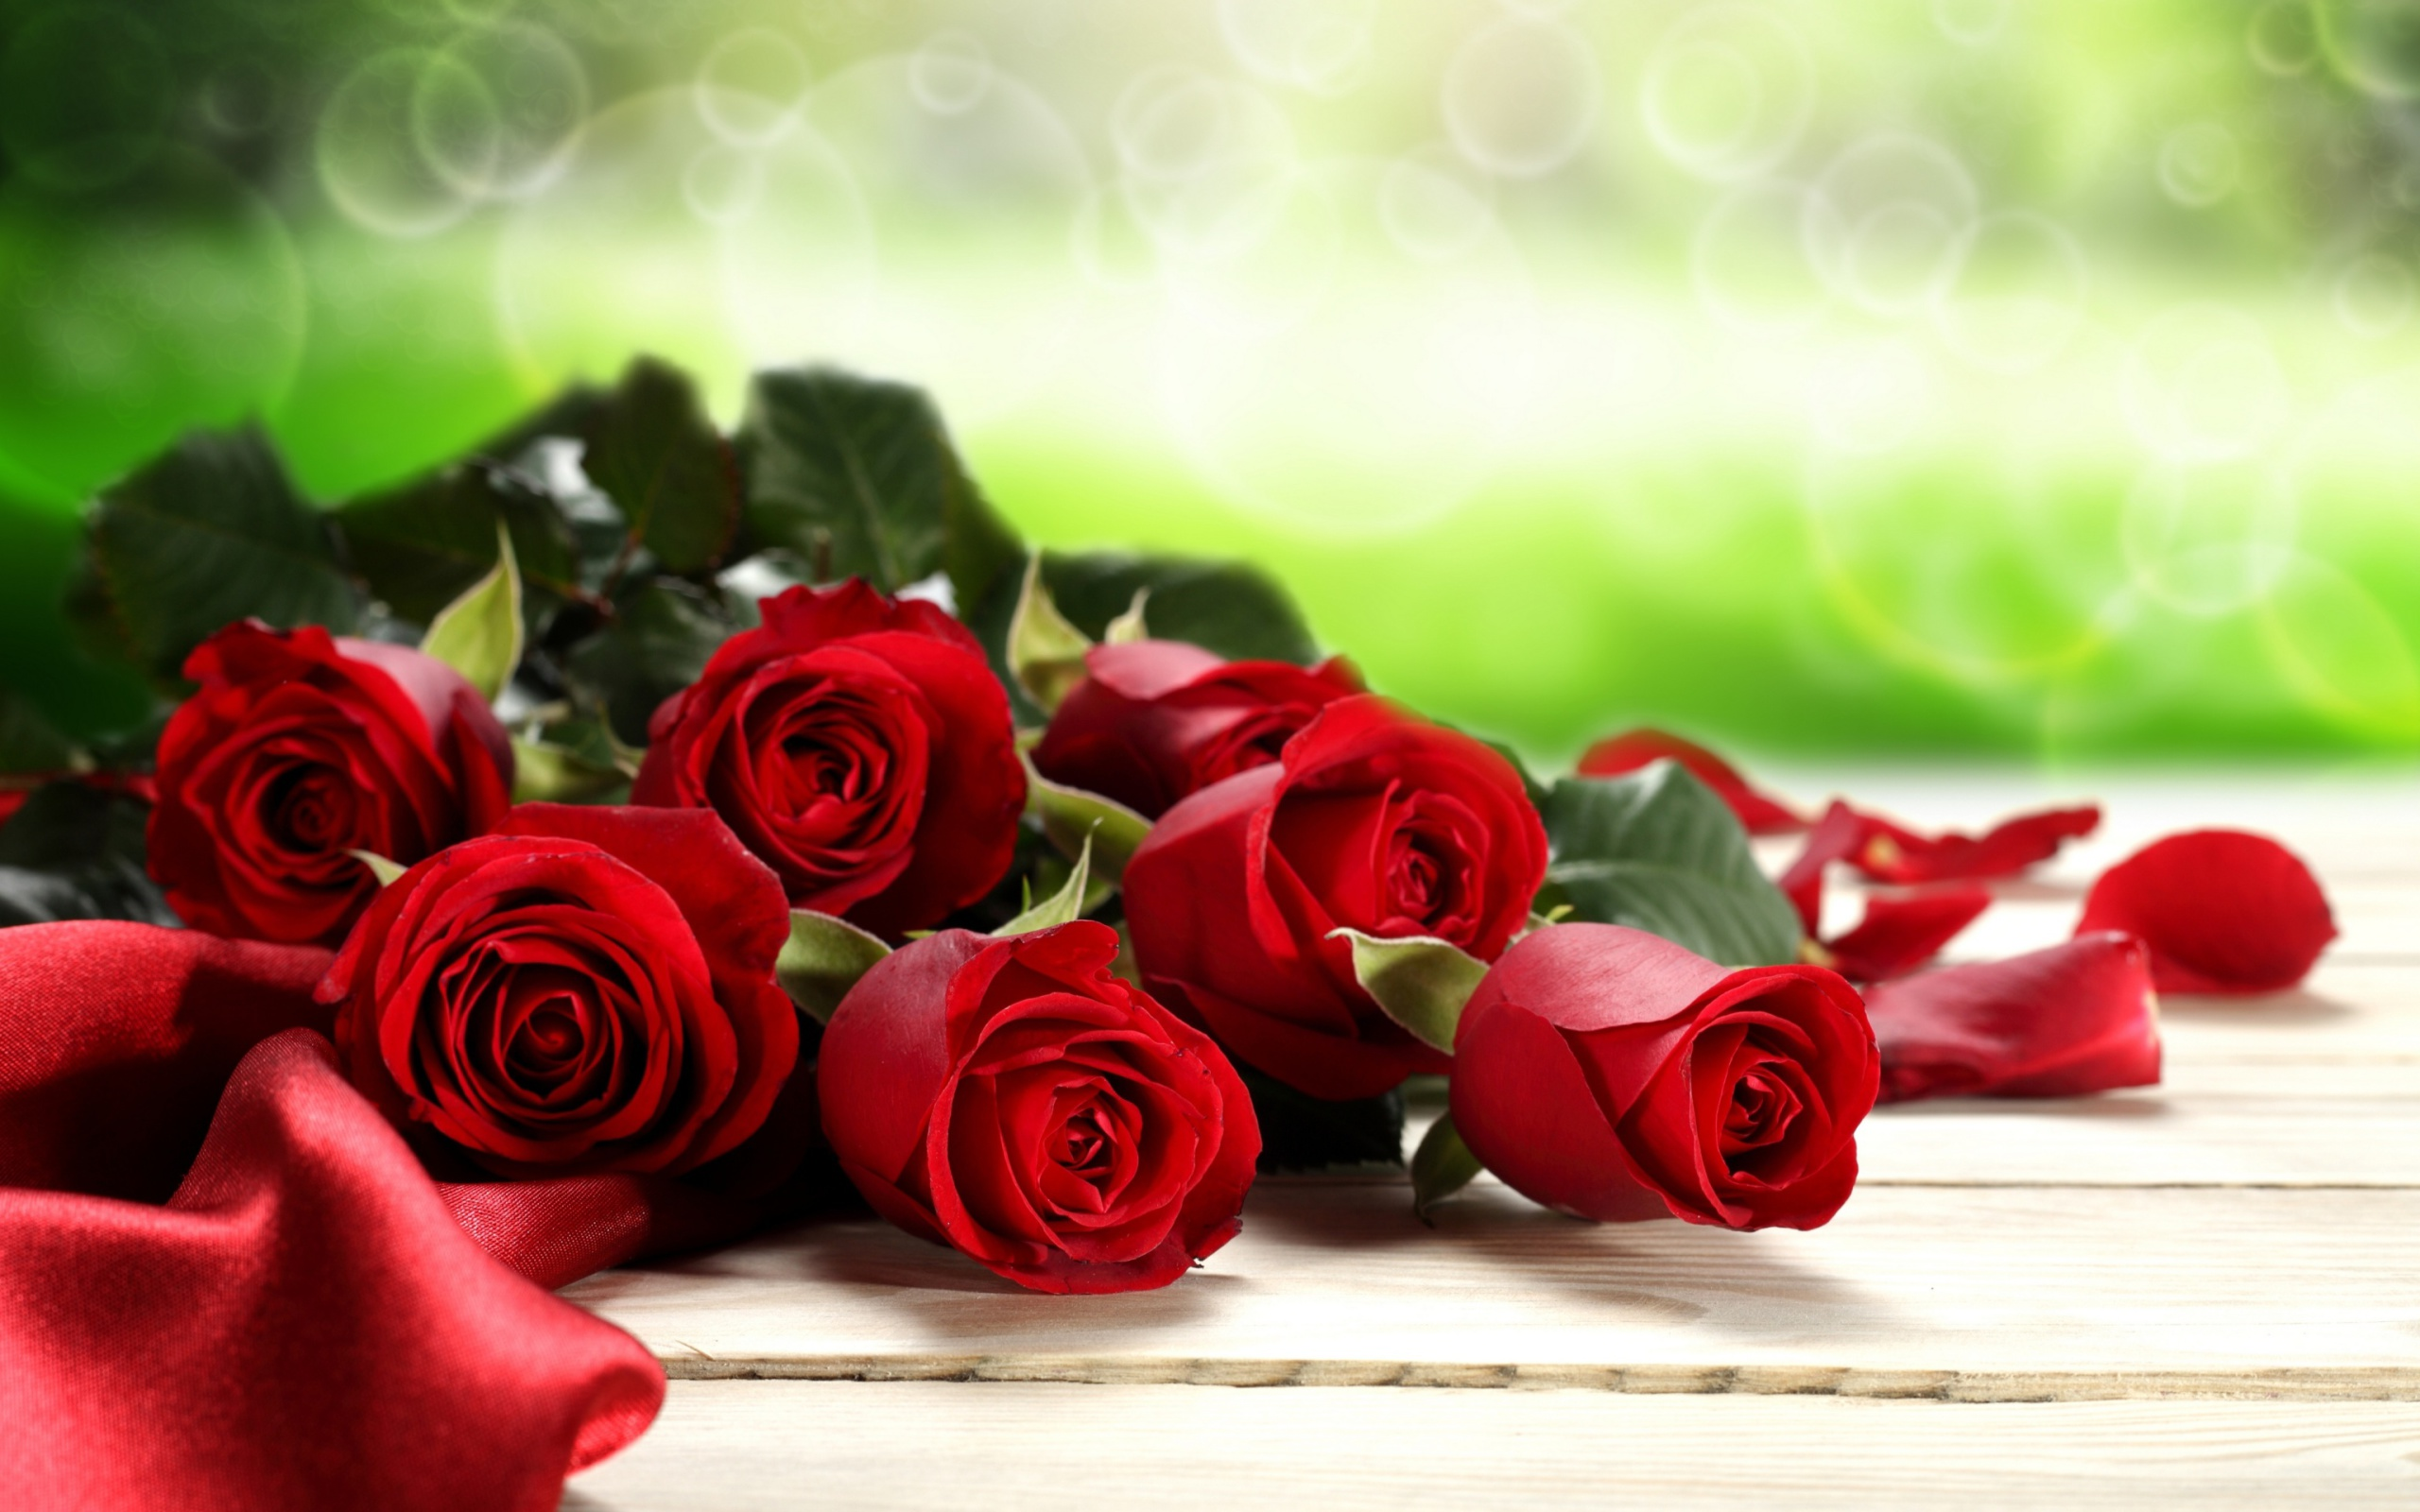 Red Roses for Valentines Day wallpaper 2560x1600